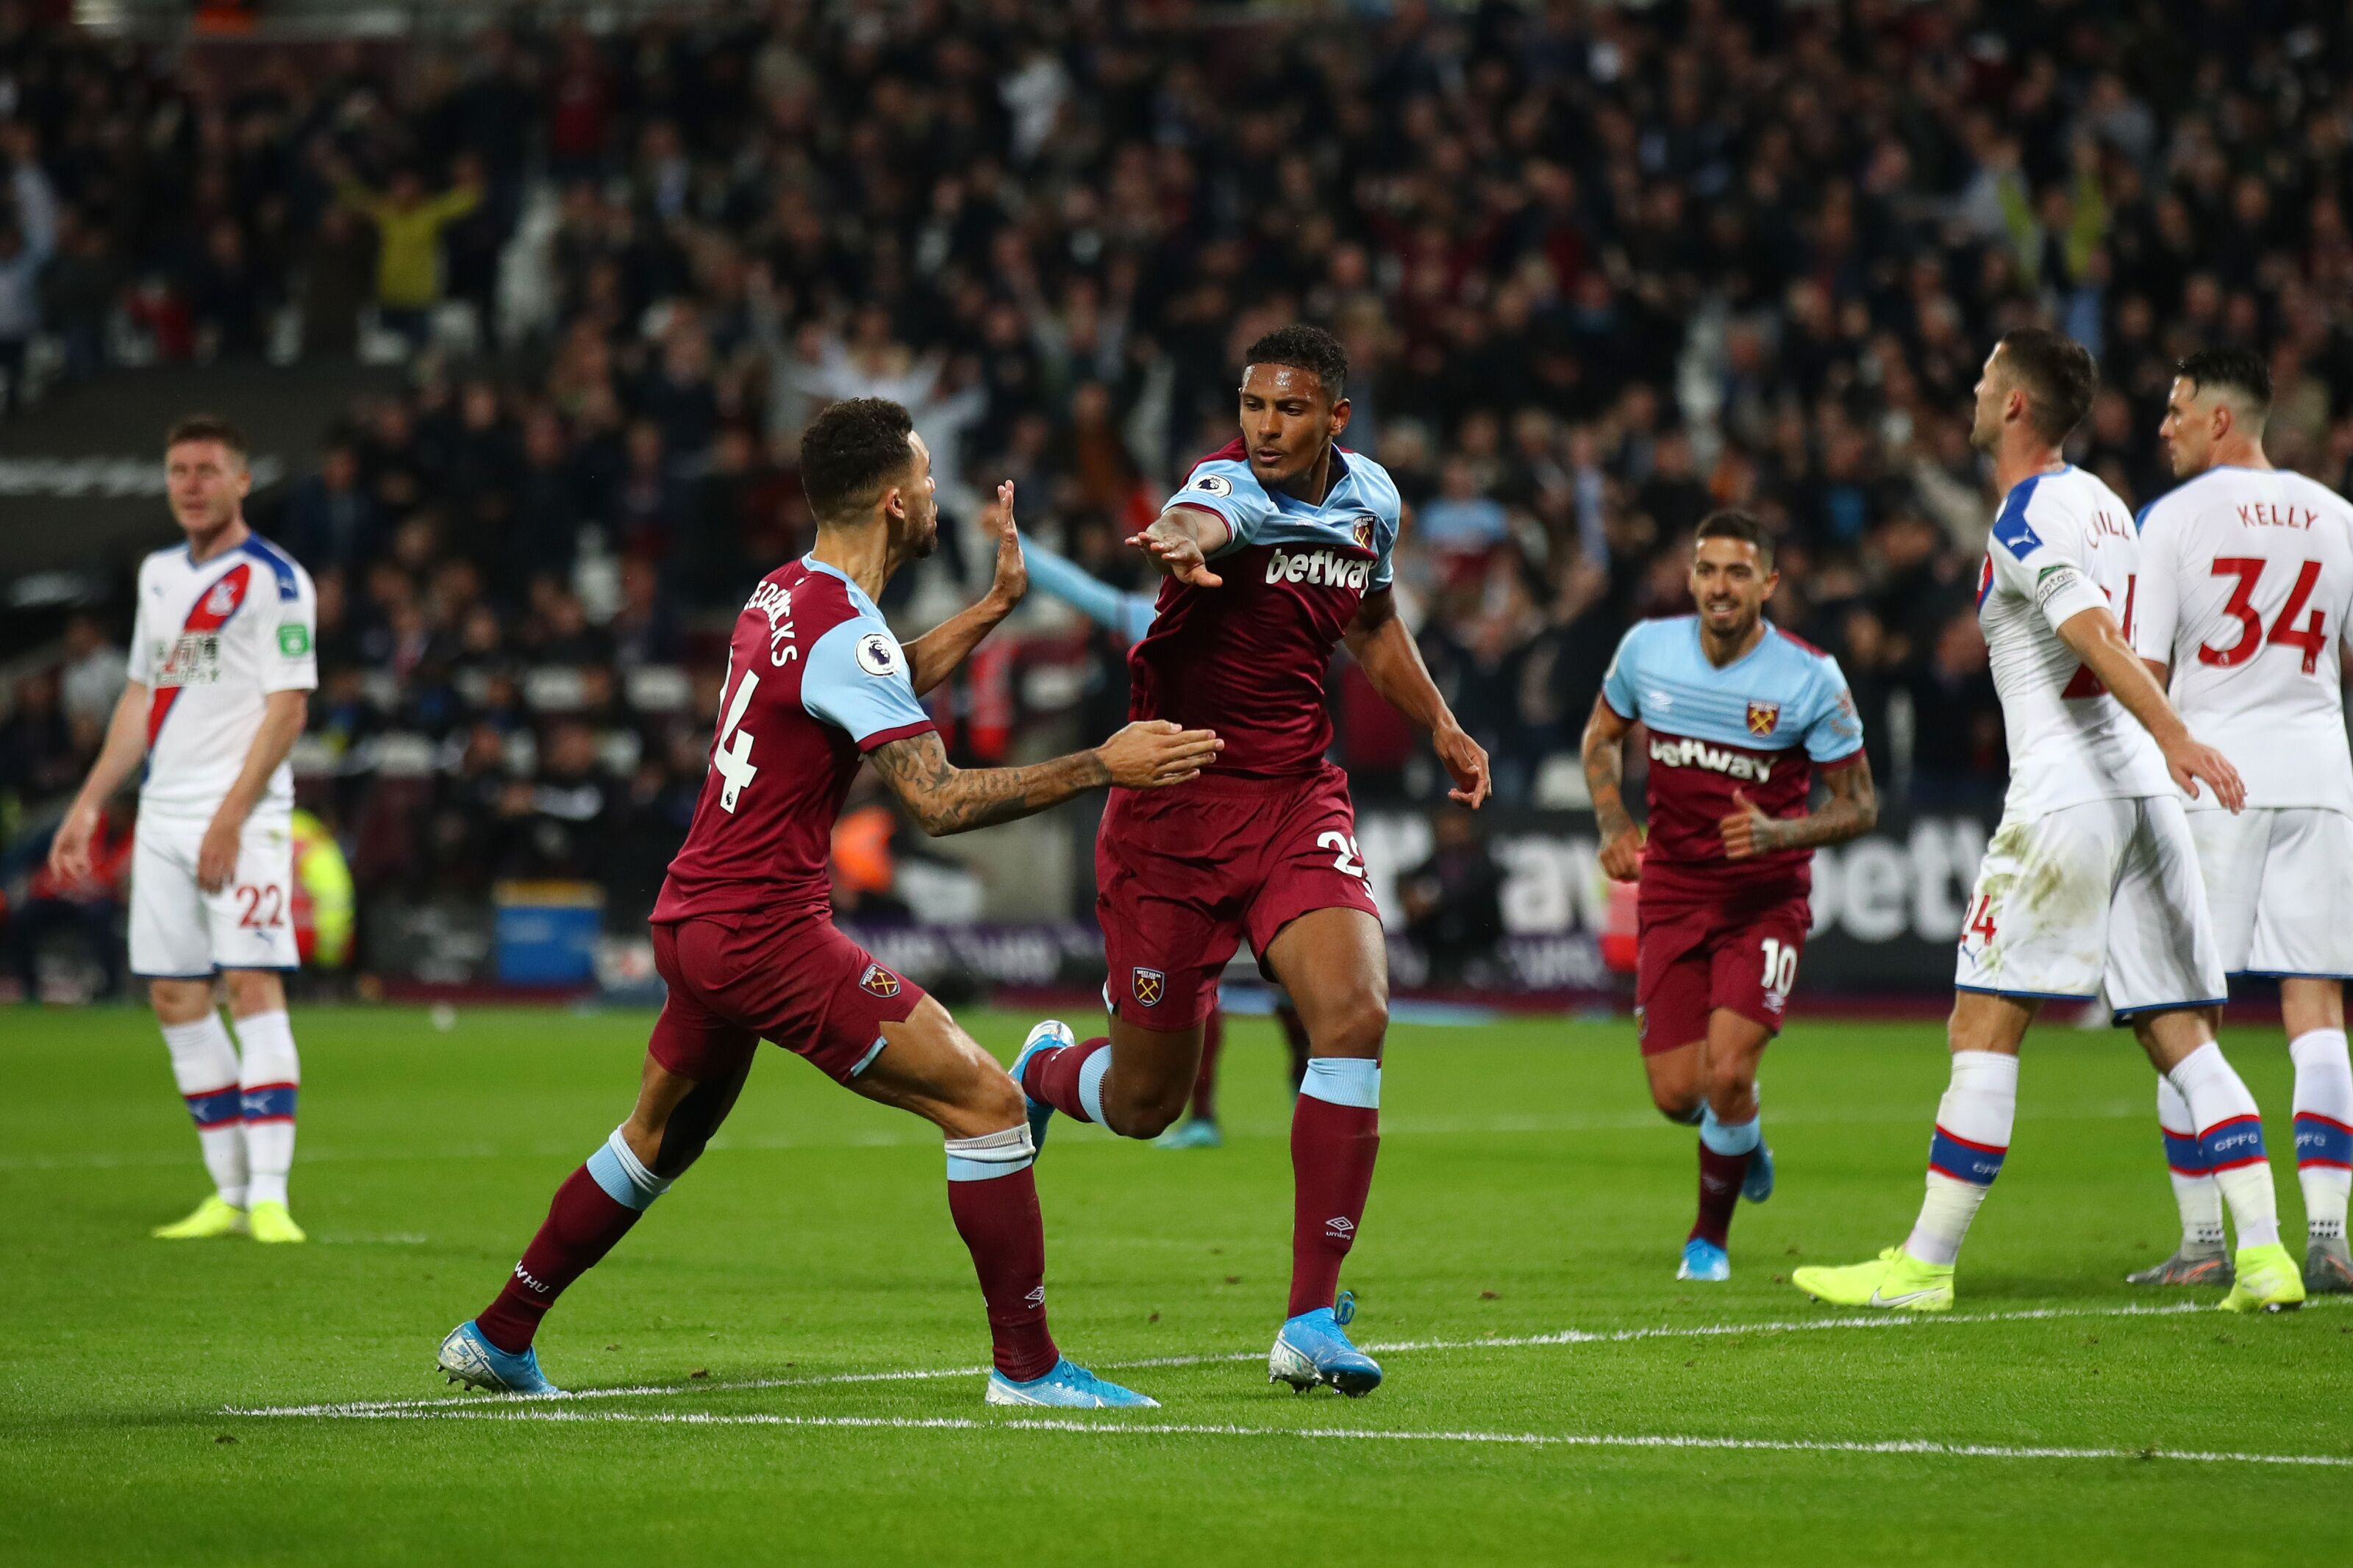 We keep high hopes and relive West Ham United's goal vs Crystal Palace